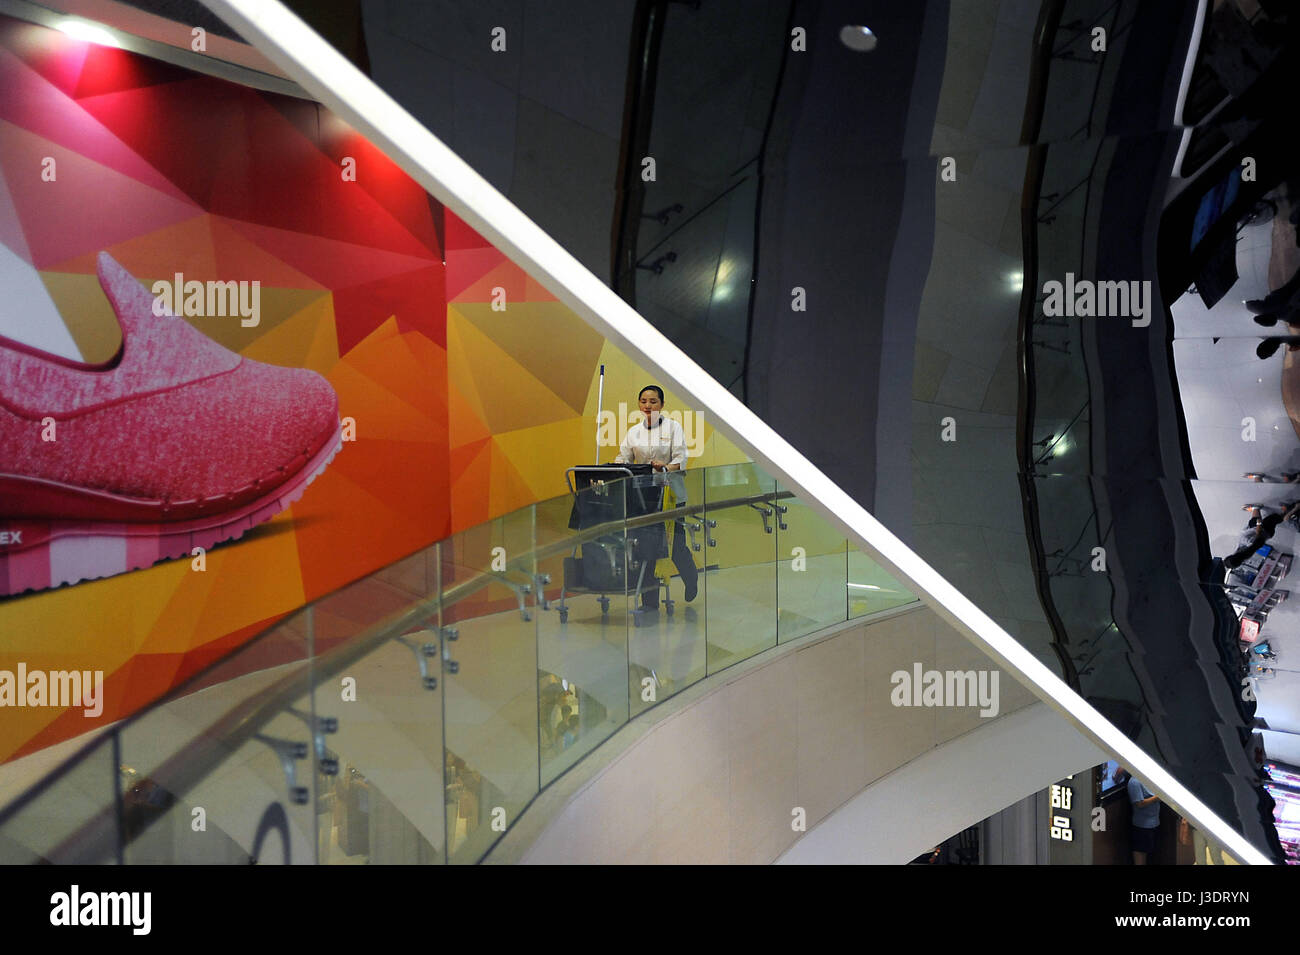 SINGAPORE. 2016. ION Orchard Shopping Mall - Stock Image